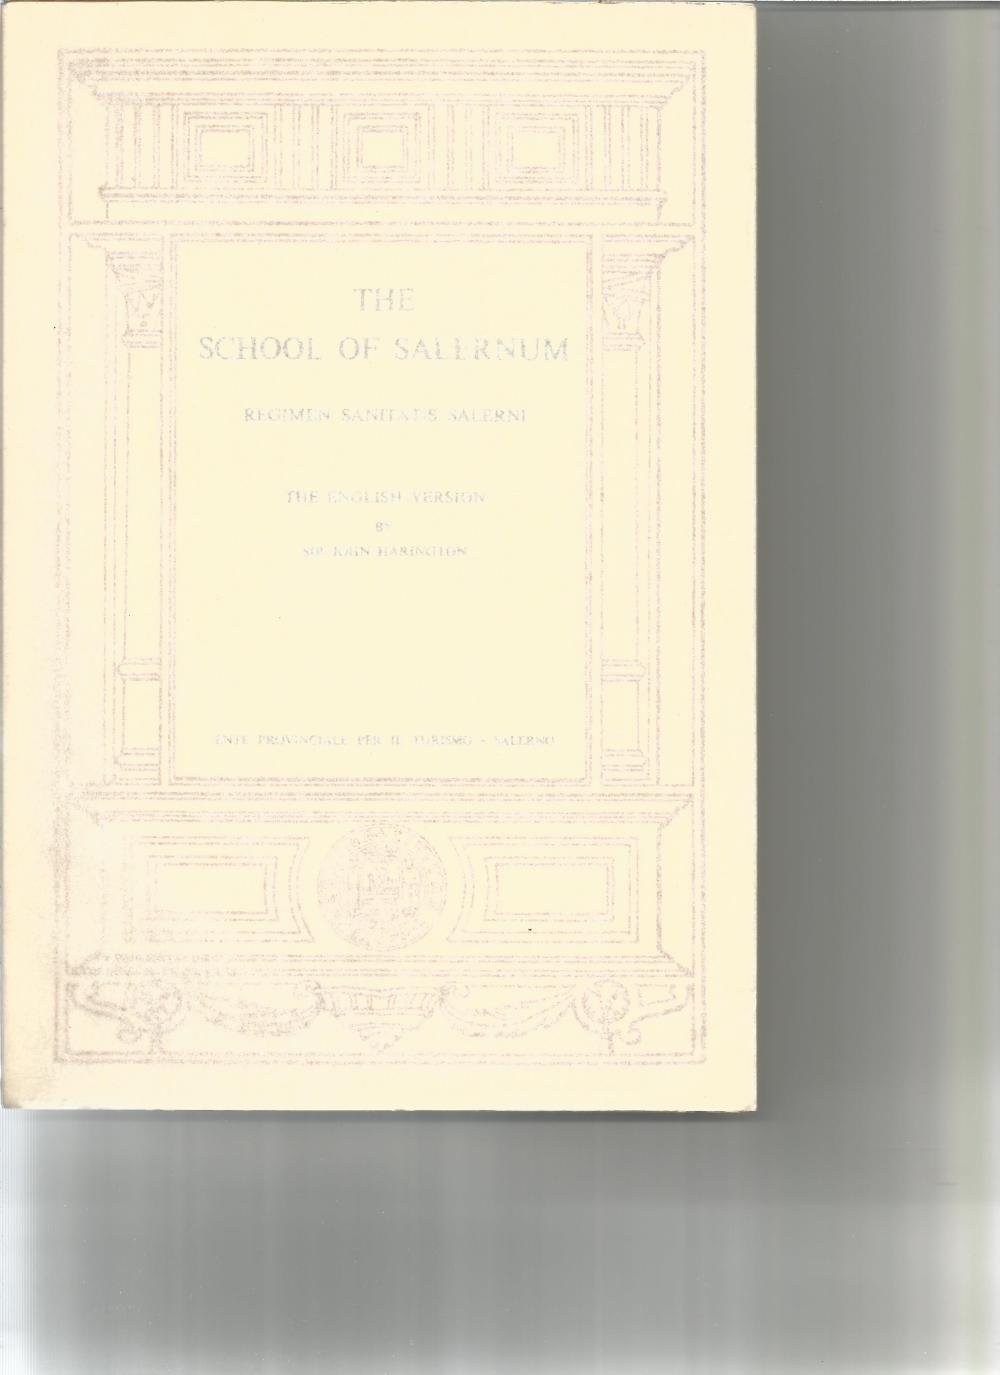 The School of Salernum by Sir John Harington. Unsigned paperback book printed in Italy no dated